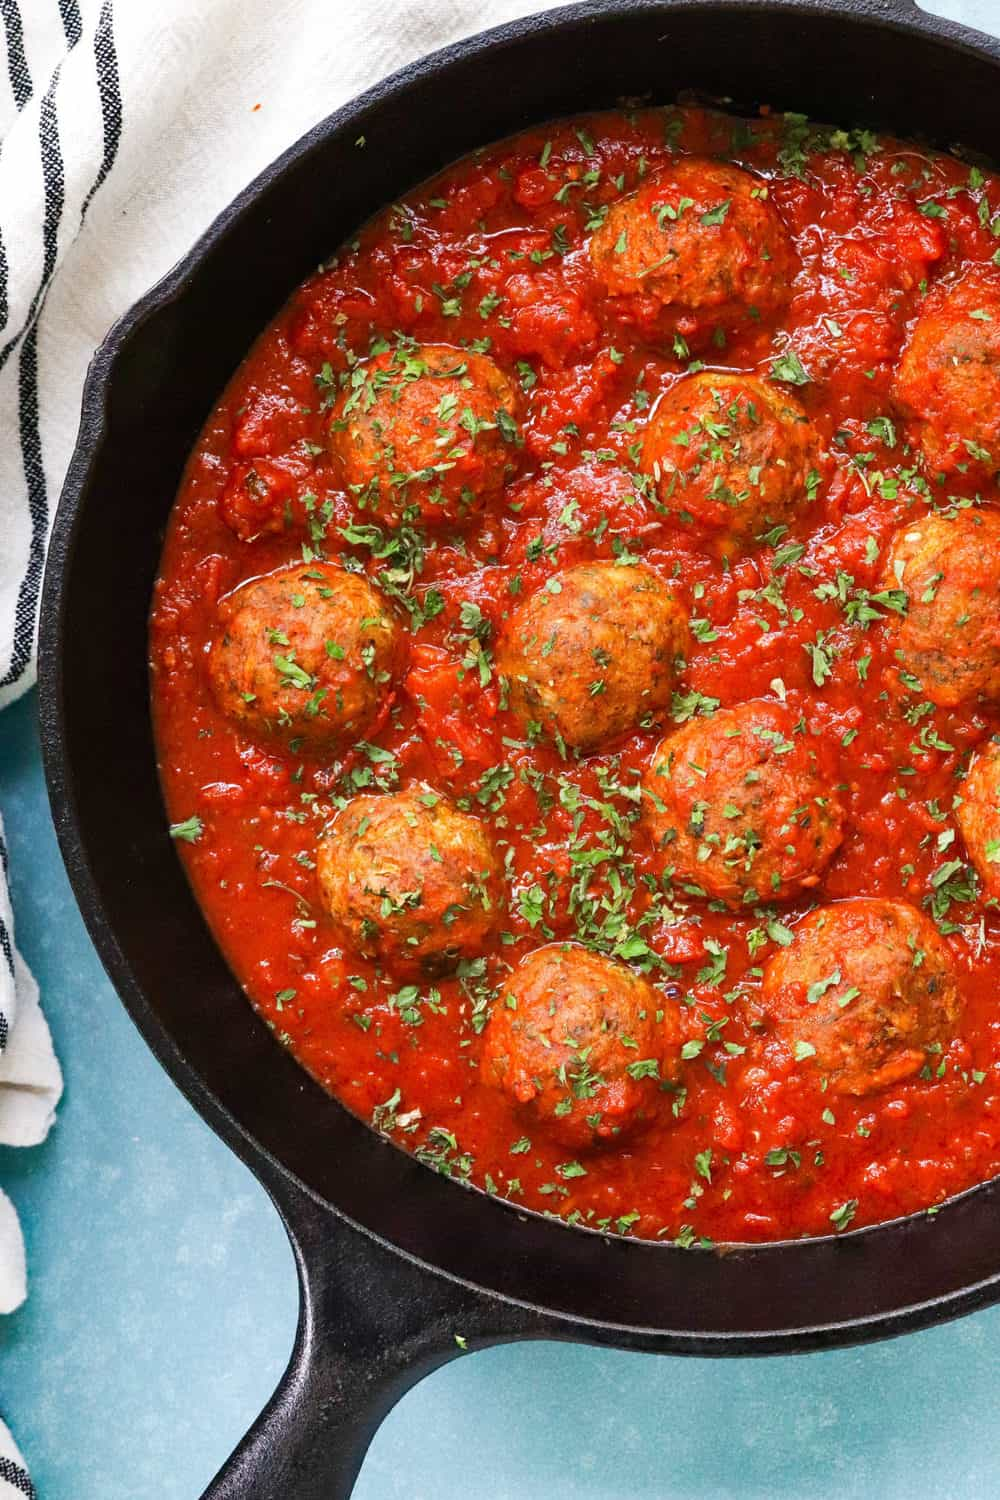 vegan meatballs in red tomato sauce in a cast iron pan on a blue board